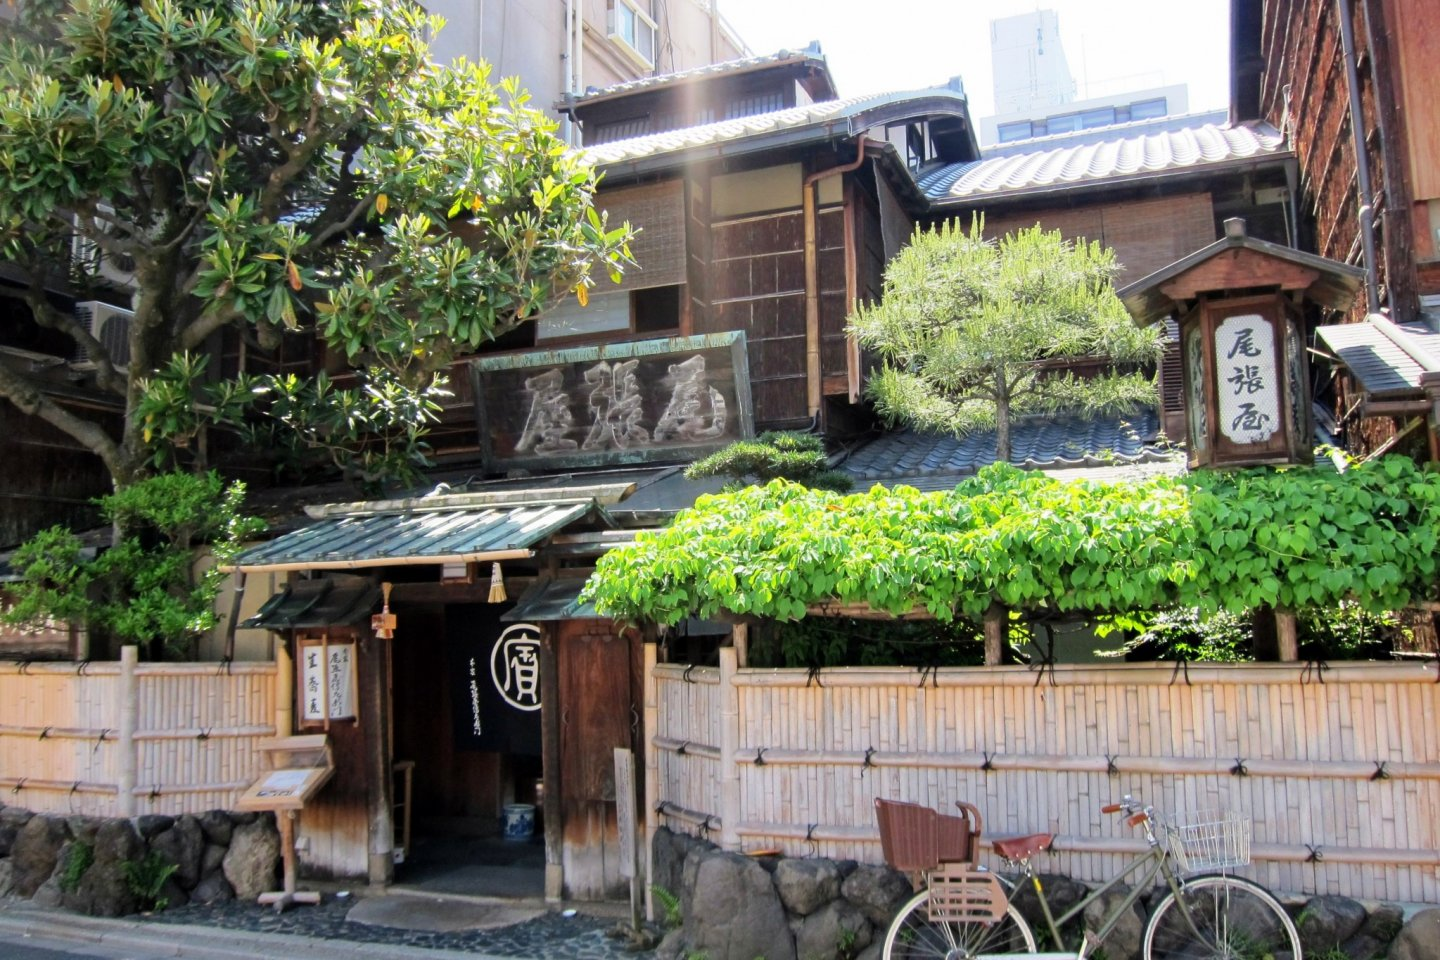 Honke Owariya is a Kyoto institution